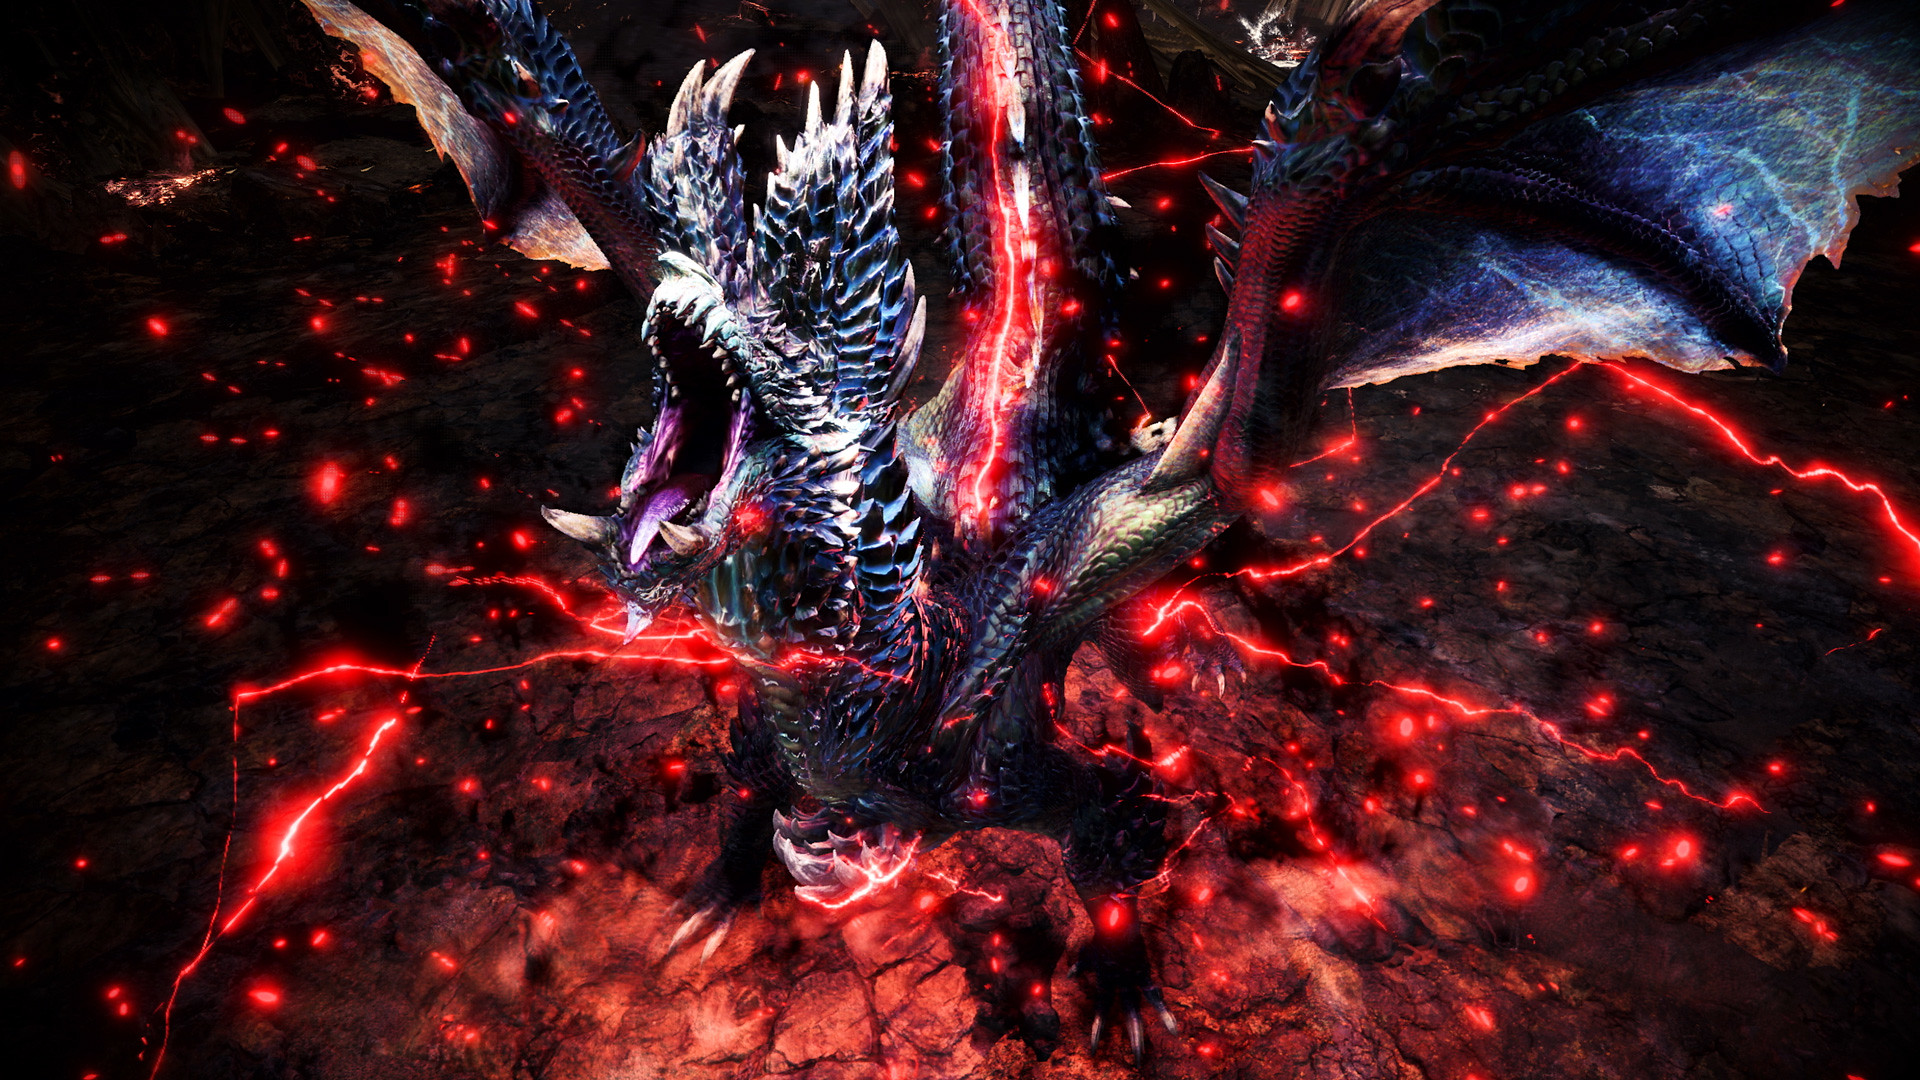 Mhw Iceborne Mode Details About Update 4 Plans For Fall 2020